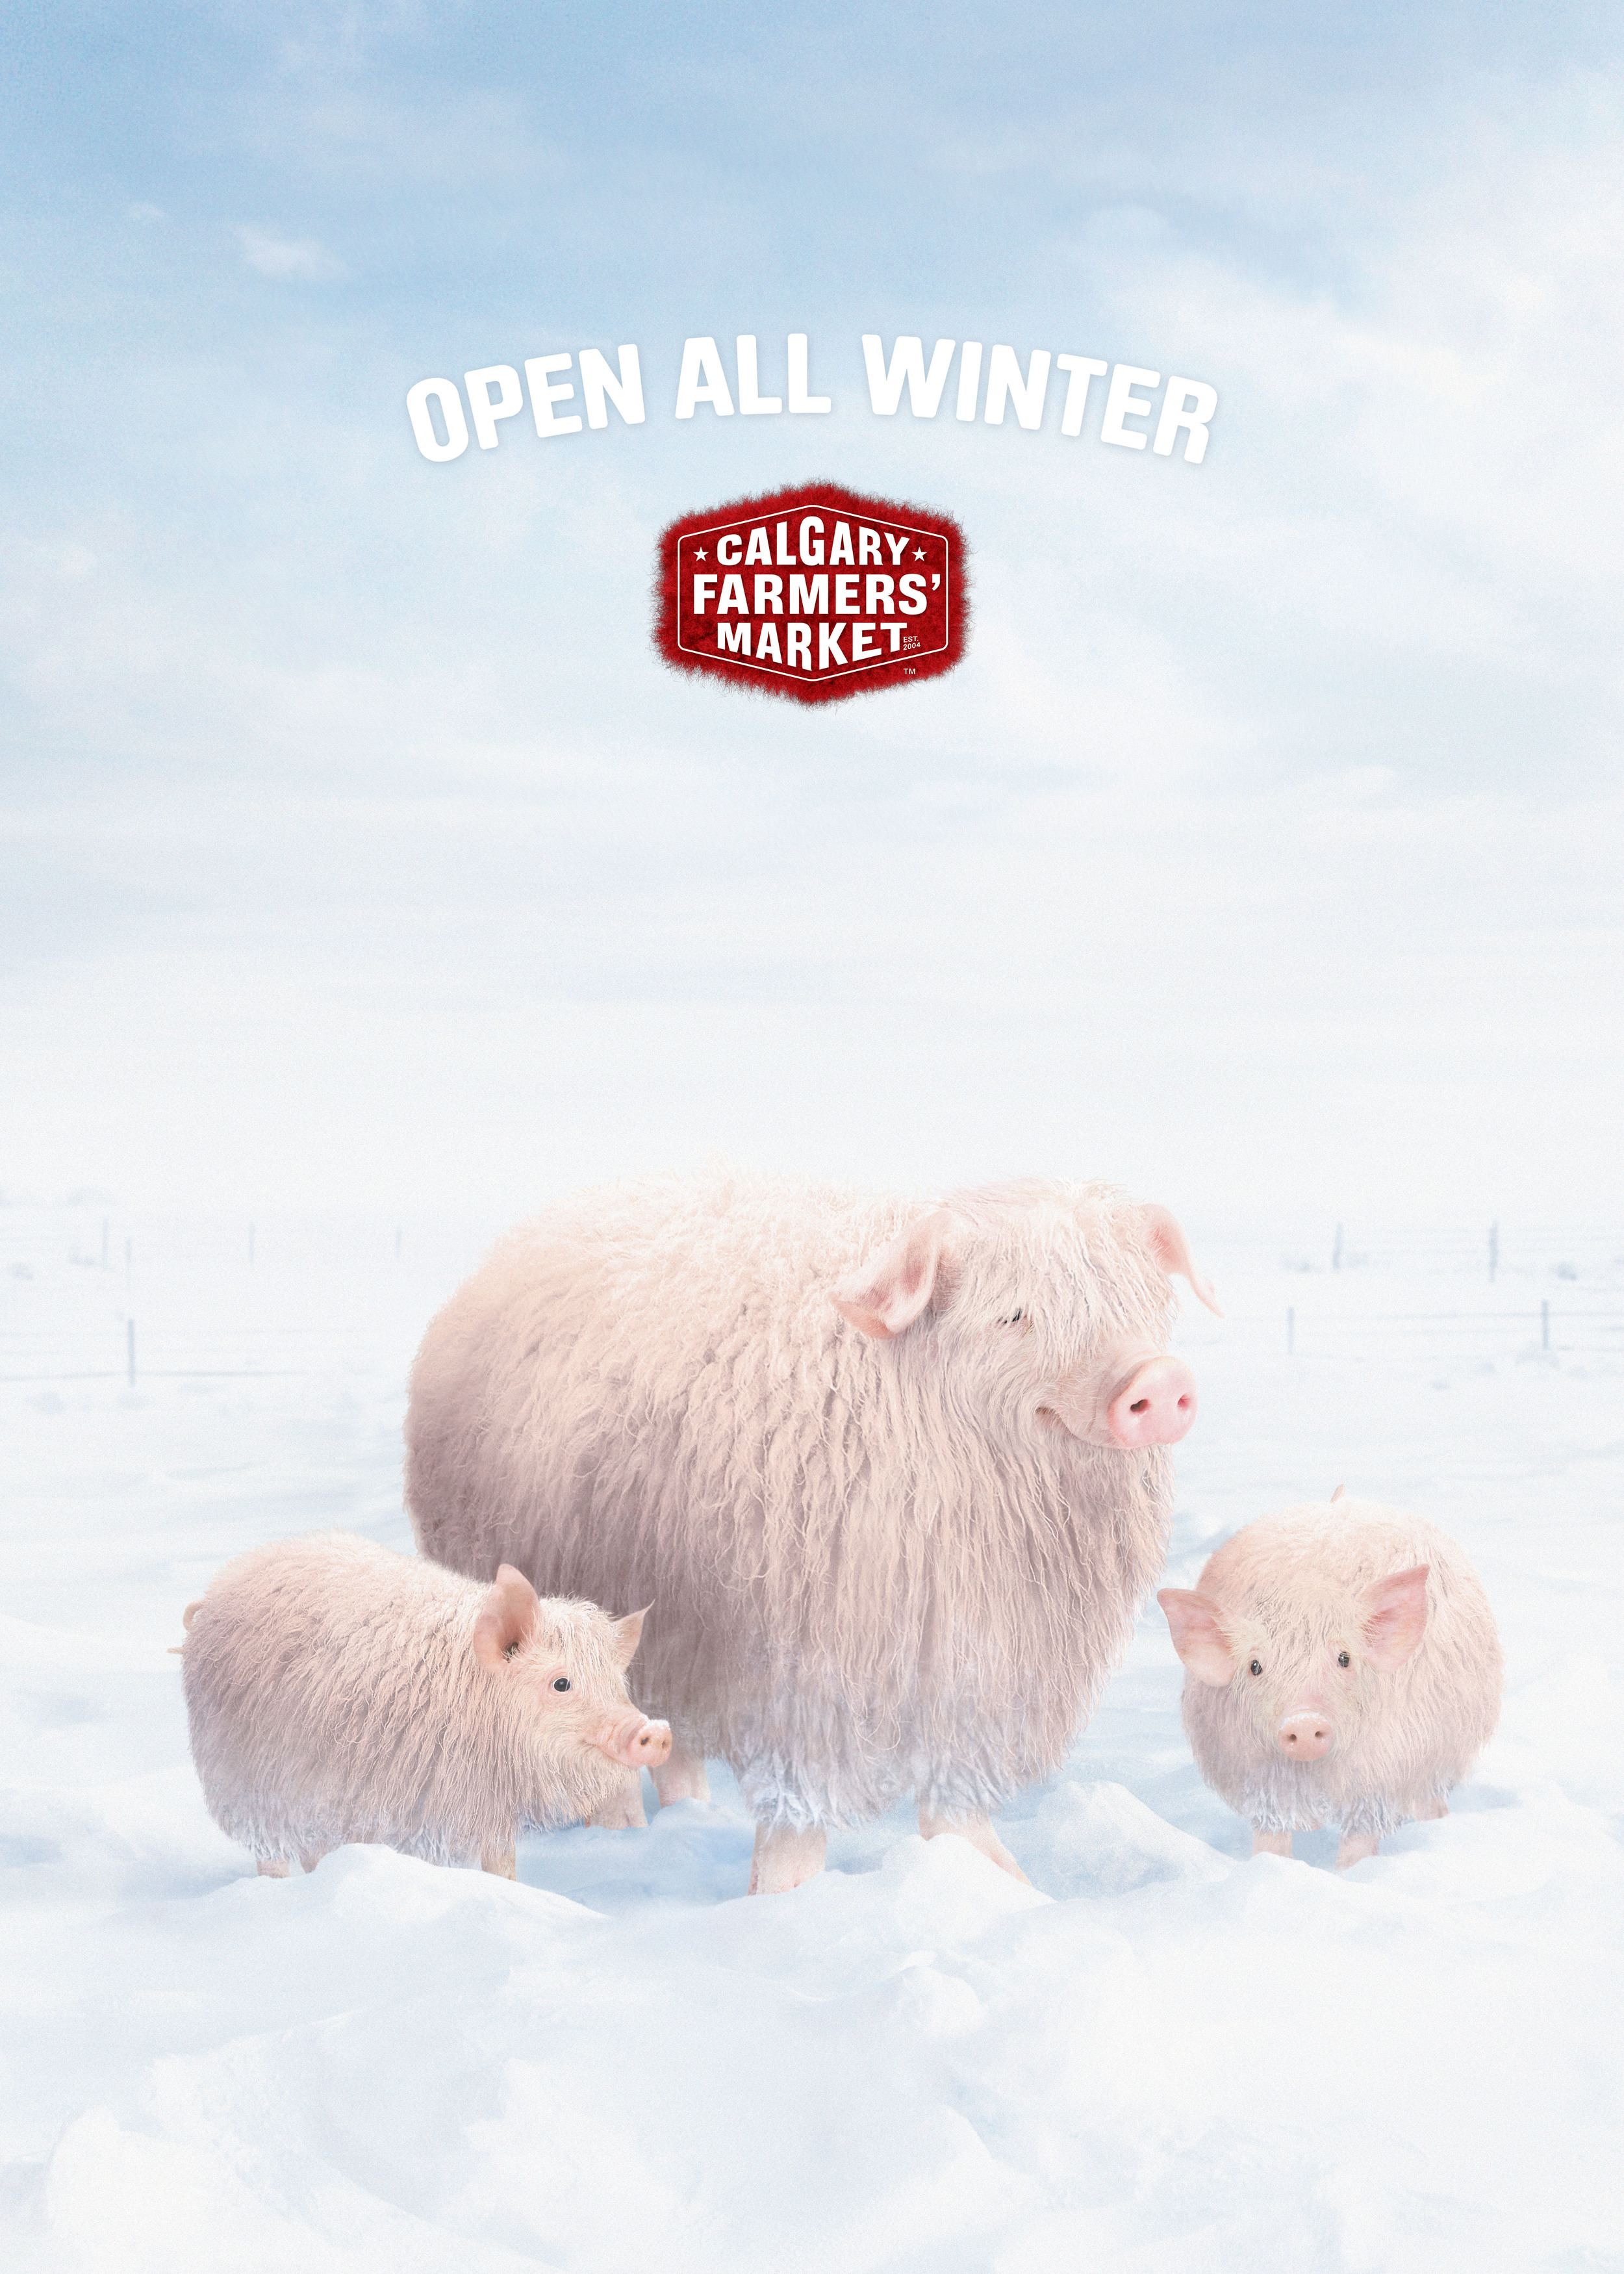 Featured in Luerzer's Archive 200 Best Digital Artists   Agency • Wax  Client • Calgary Farmers Market  Art Director •   Brad Connell  Writer • Chris Lihou  Photography • Brad Pickard / Stock  CGI fur • Brad Pickard